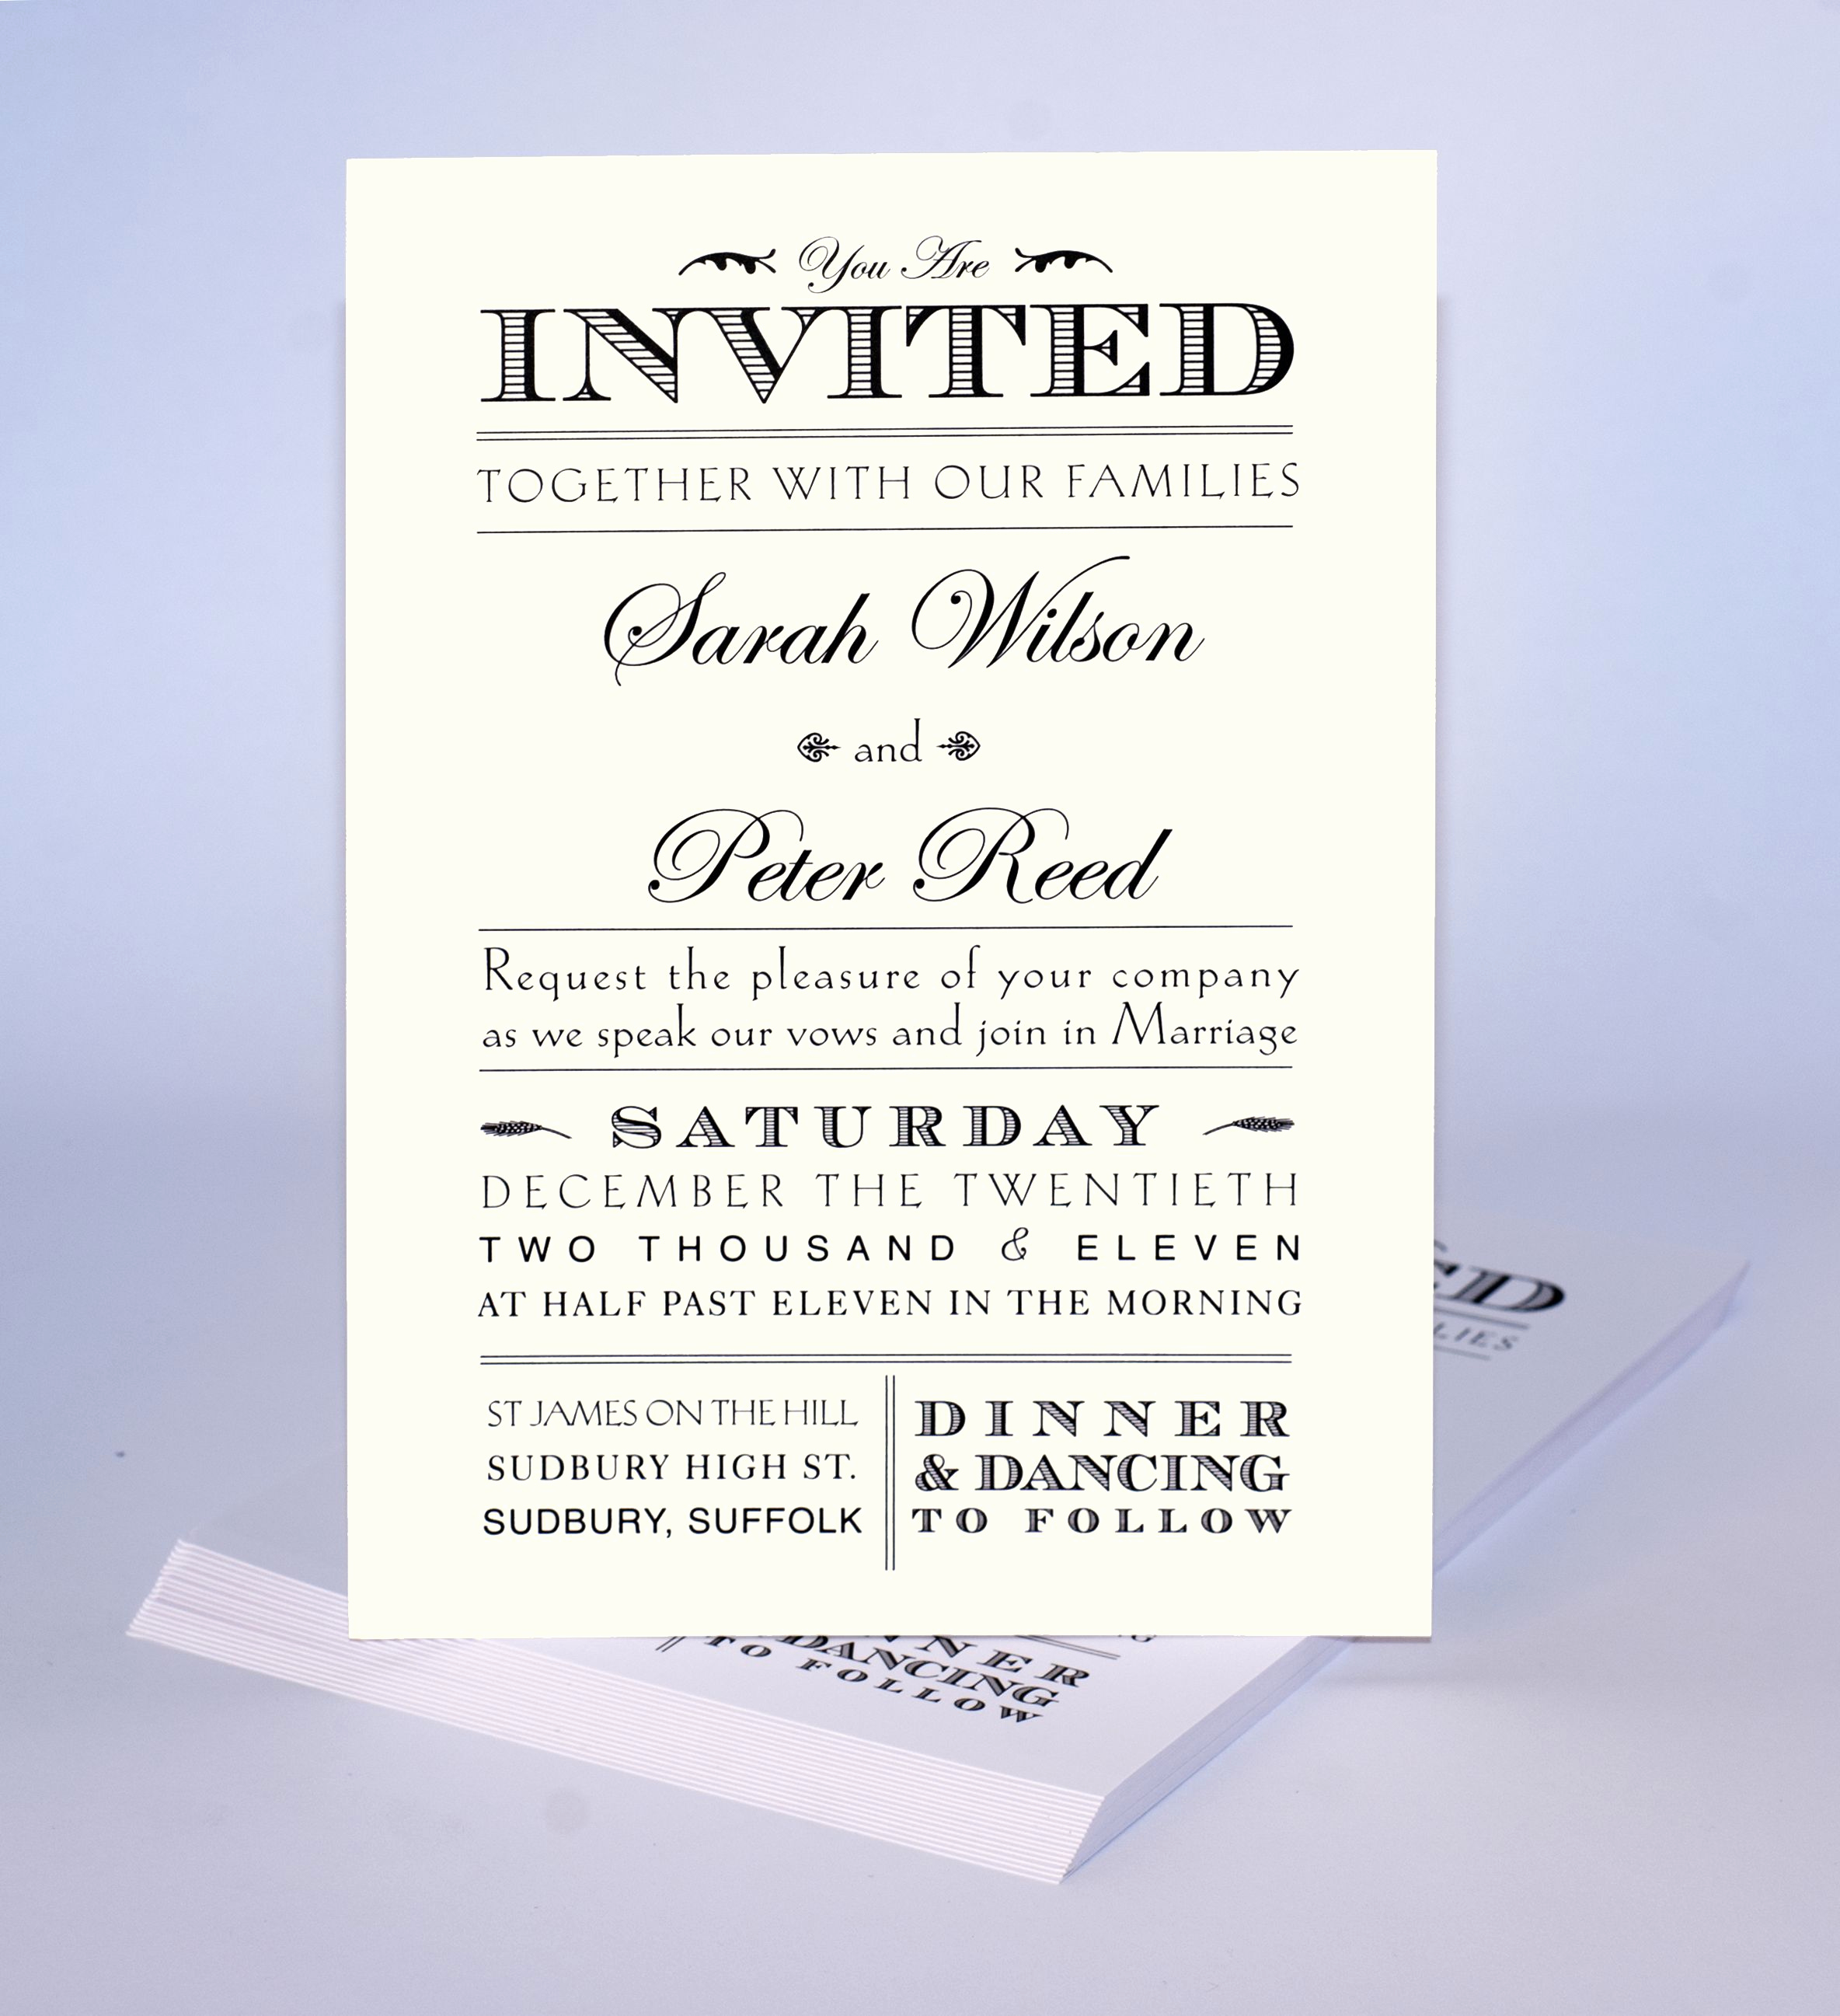 Informal Wedding Invitation Wording Awesome Inspiration Invitations